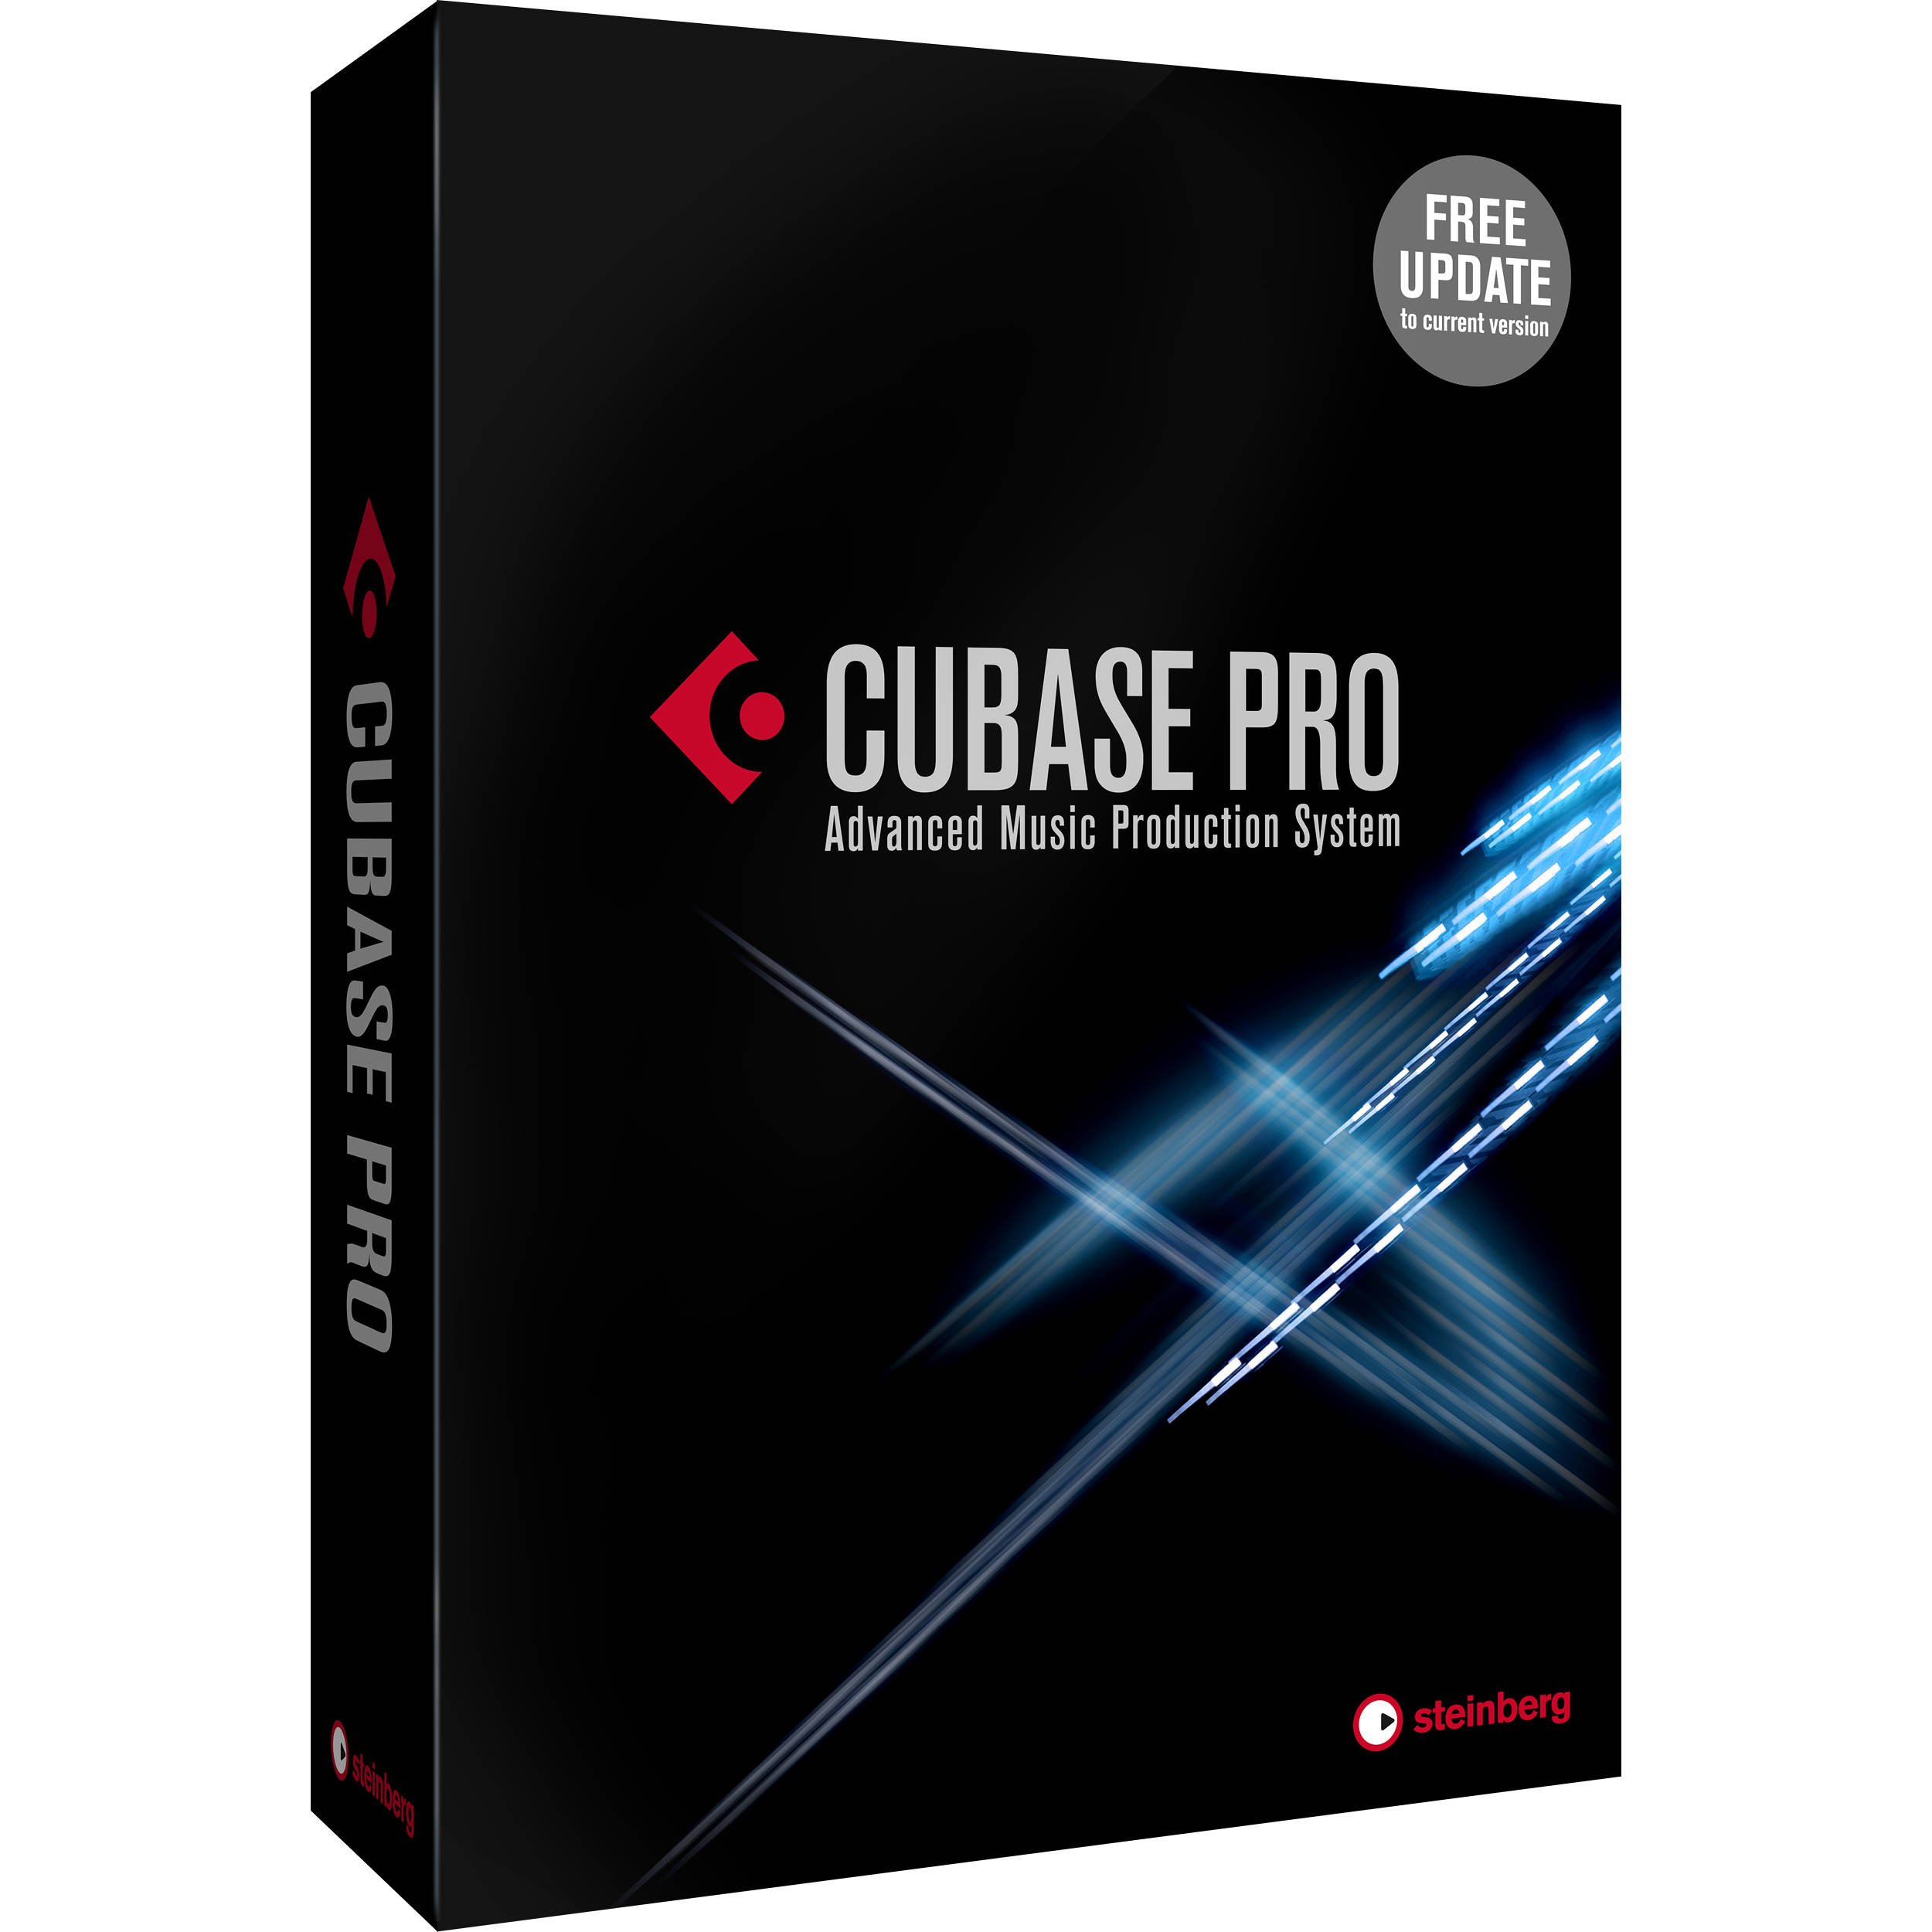 Steinberg Cubase Pro 9 Recording Software, Professional by Steinberg